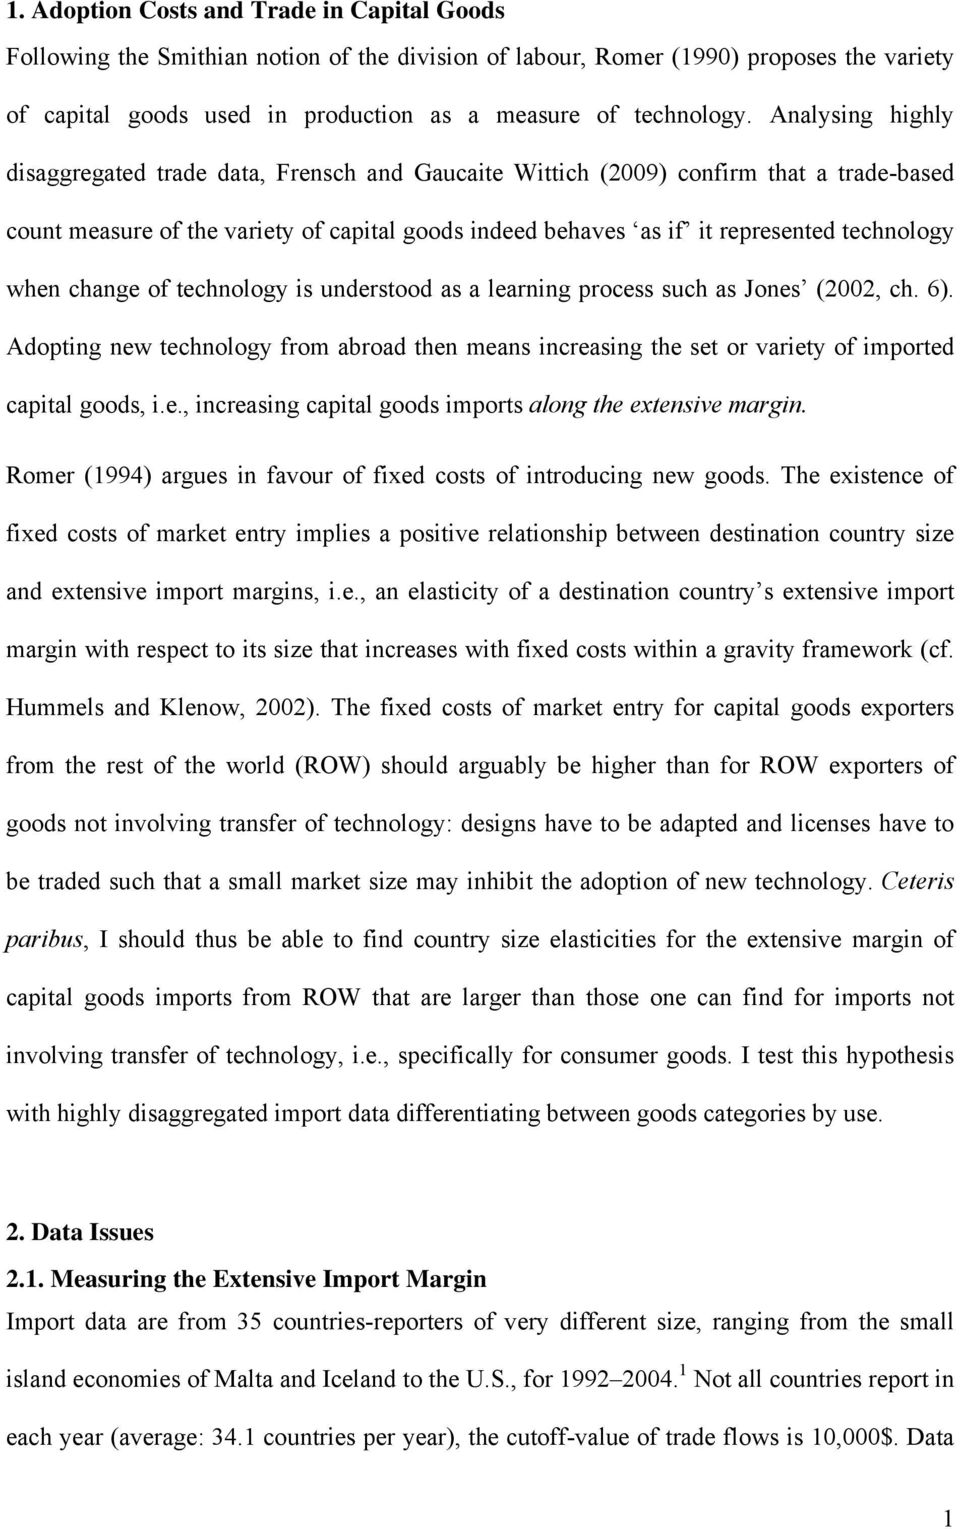 when change of technology is understood as a learning process such as Jones (2002, ch. 6). Adopting new technology from abroad then means increasing the set or variety of imported capital goods, i.e., increasing capital goods imports along the extensive margin.